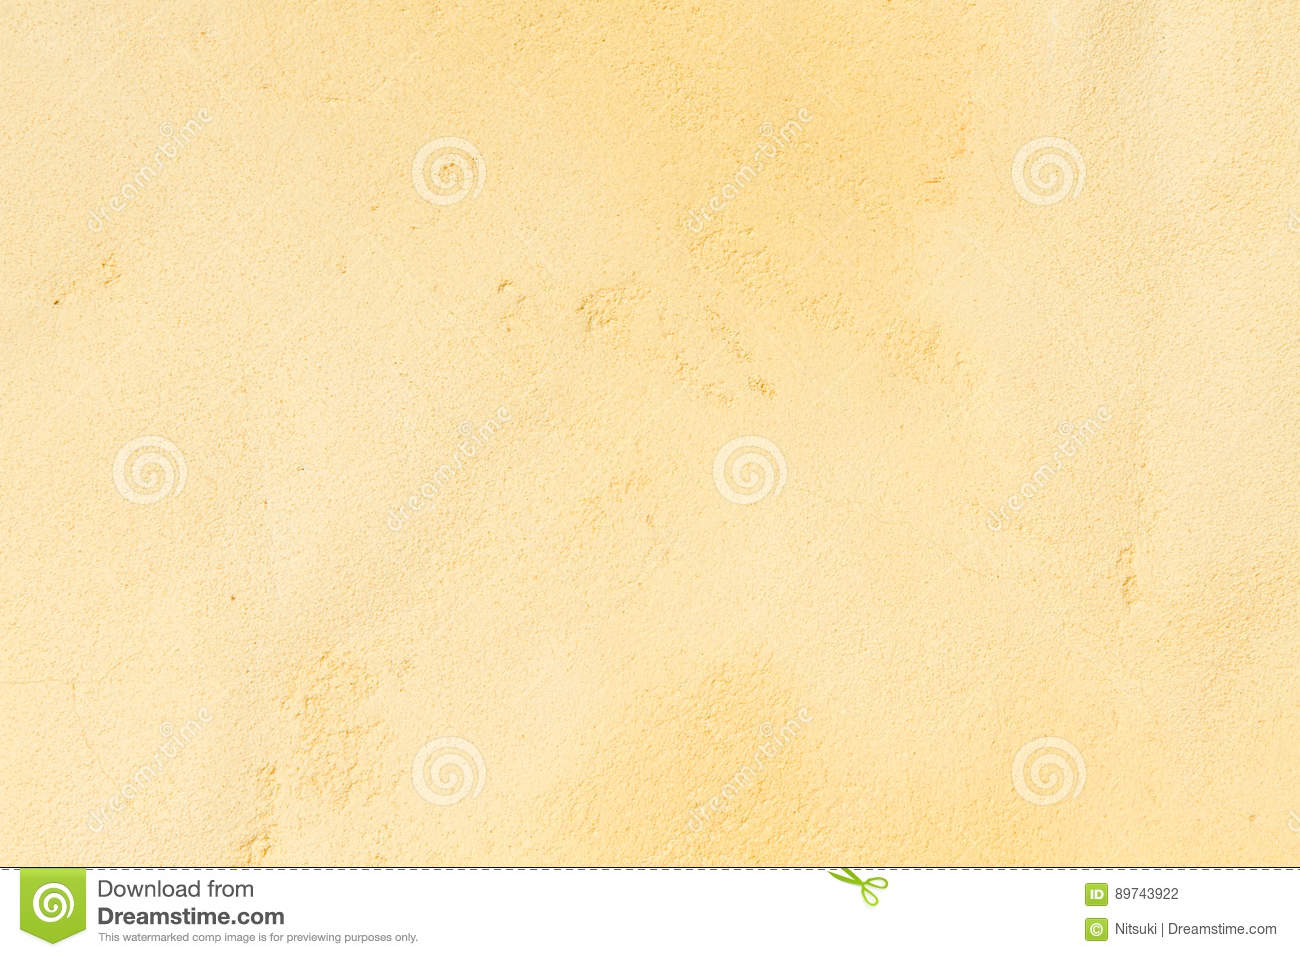 Cream color textured wall stock photo. Image of wallpaper - 89743922